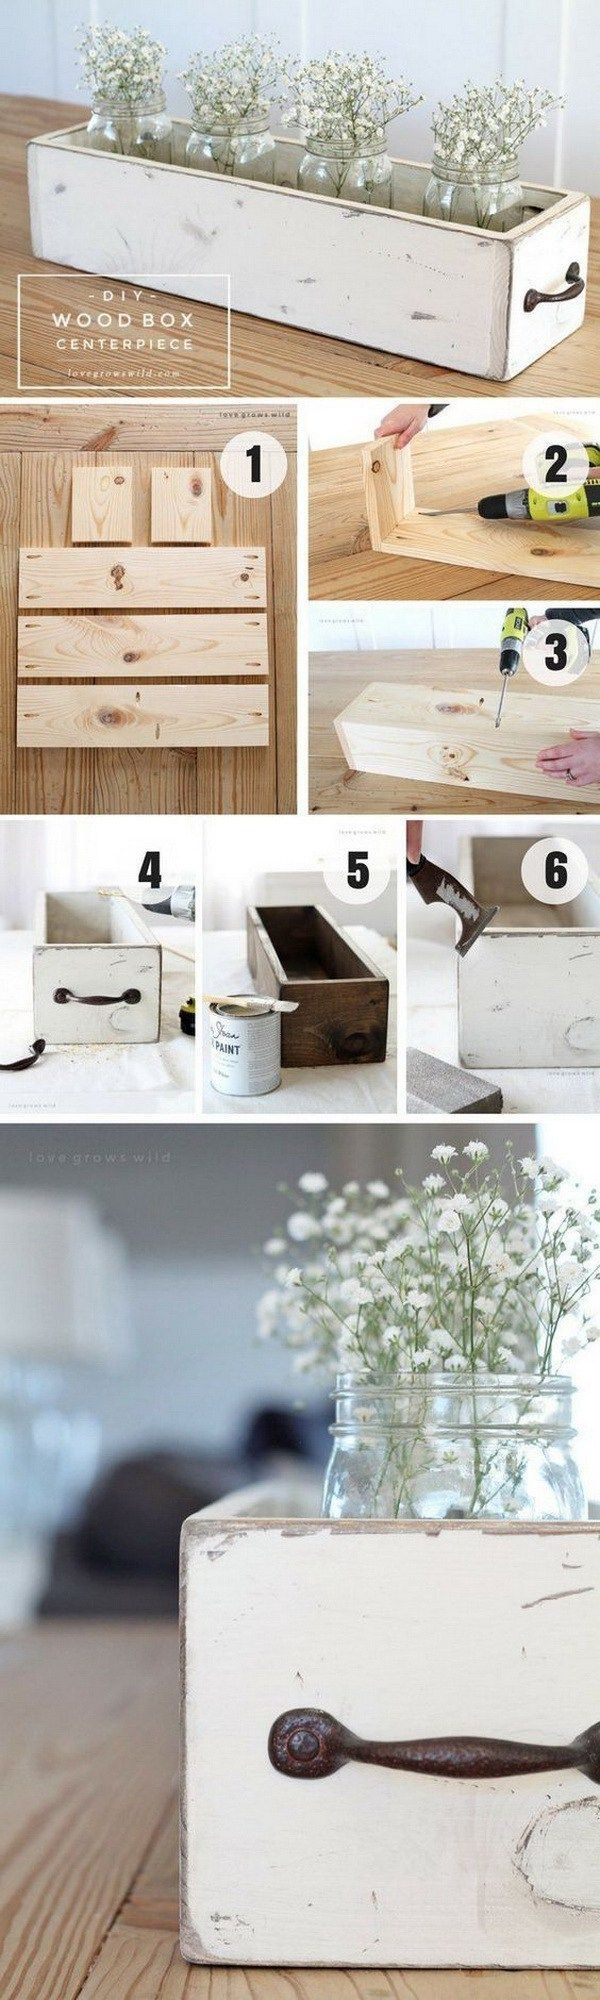 Diy shabby chic home decor - Diy Wood Box Centerpiece This Wood Box With Shabby Chic Look Fits In With Any